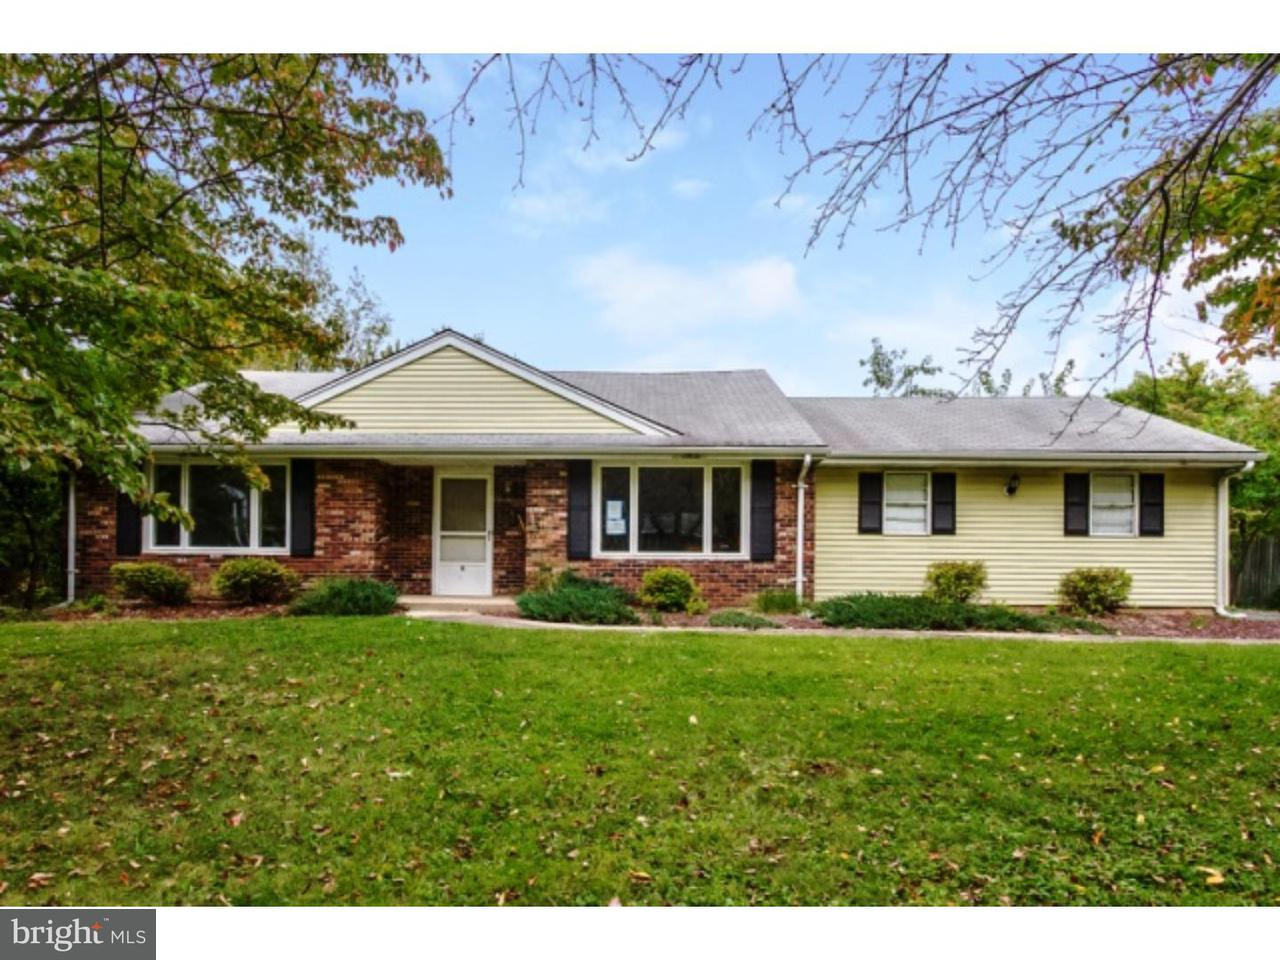 Single Family Home for Sale at 6 CHERRY BROOK Lane Hightstown, New Jersey 08520 United StatesMunicipality: East Windsor Township